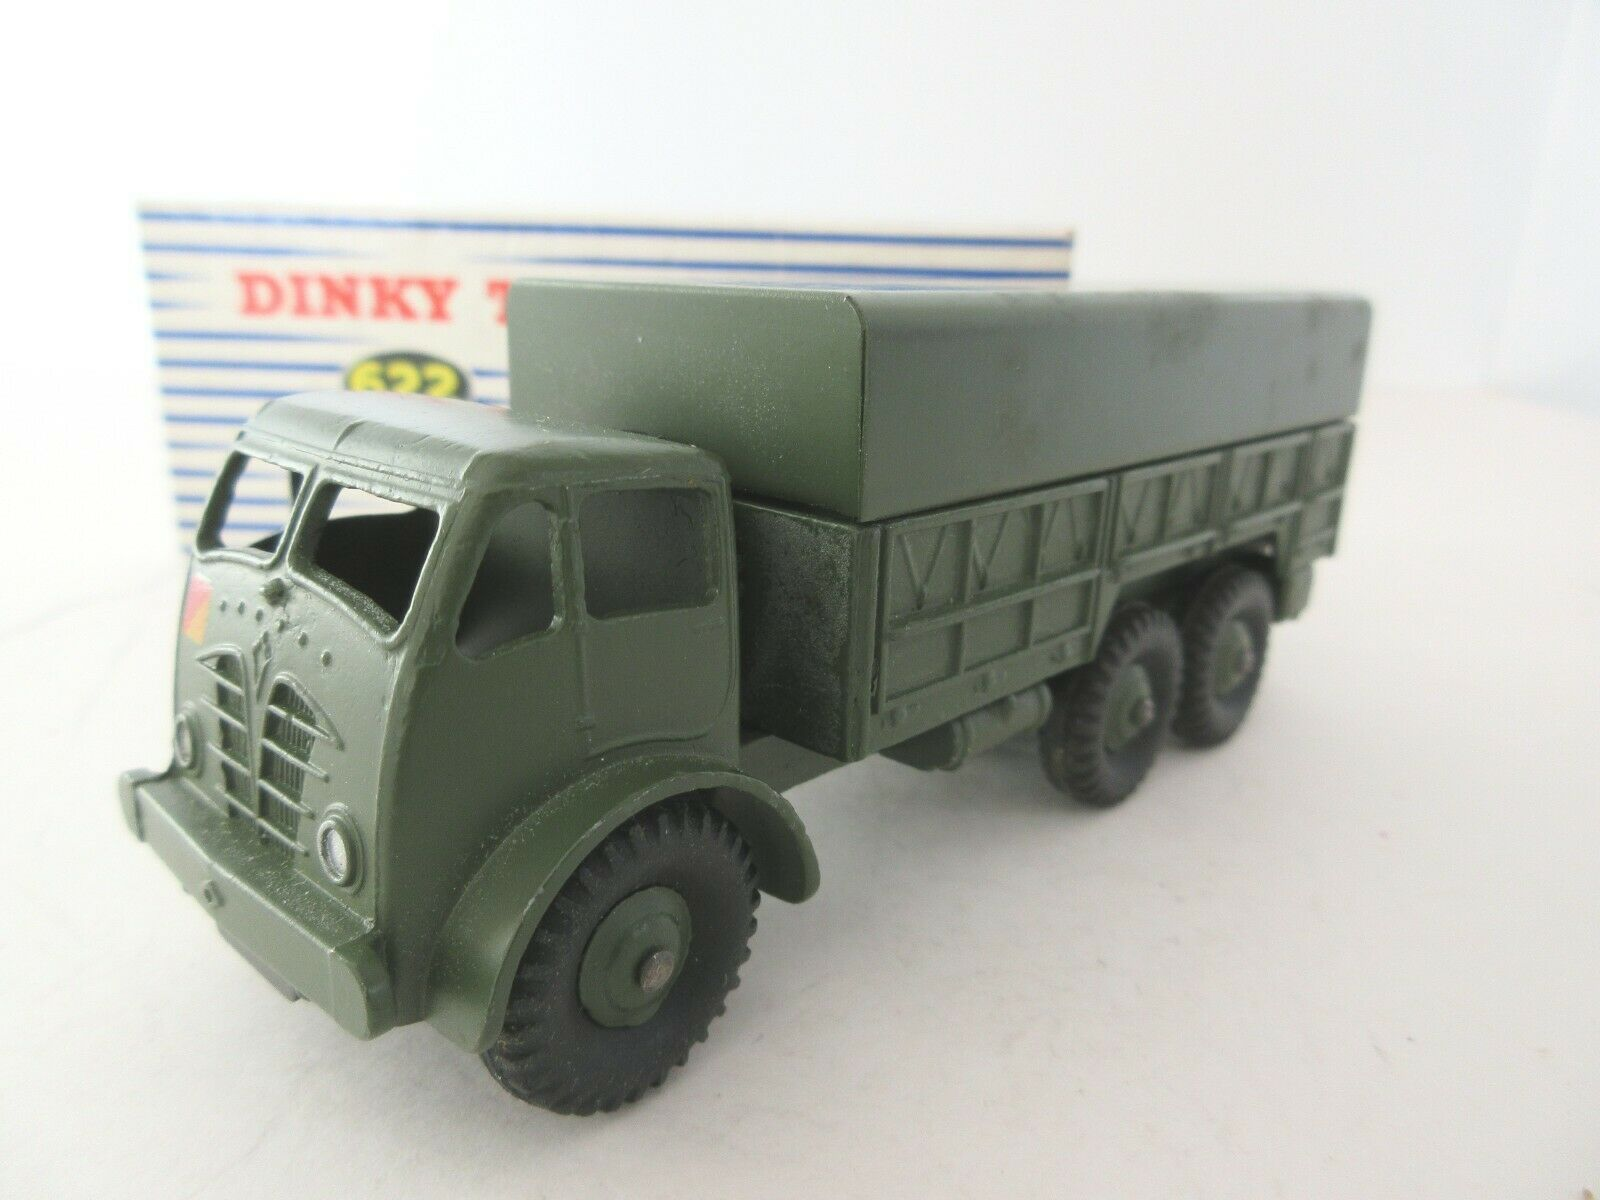 Dinky Toys  Foden Ten Ton Army Truck without Driver - 1950's Post War Dinky Toy